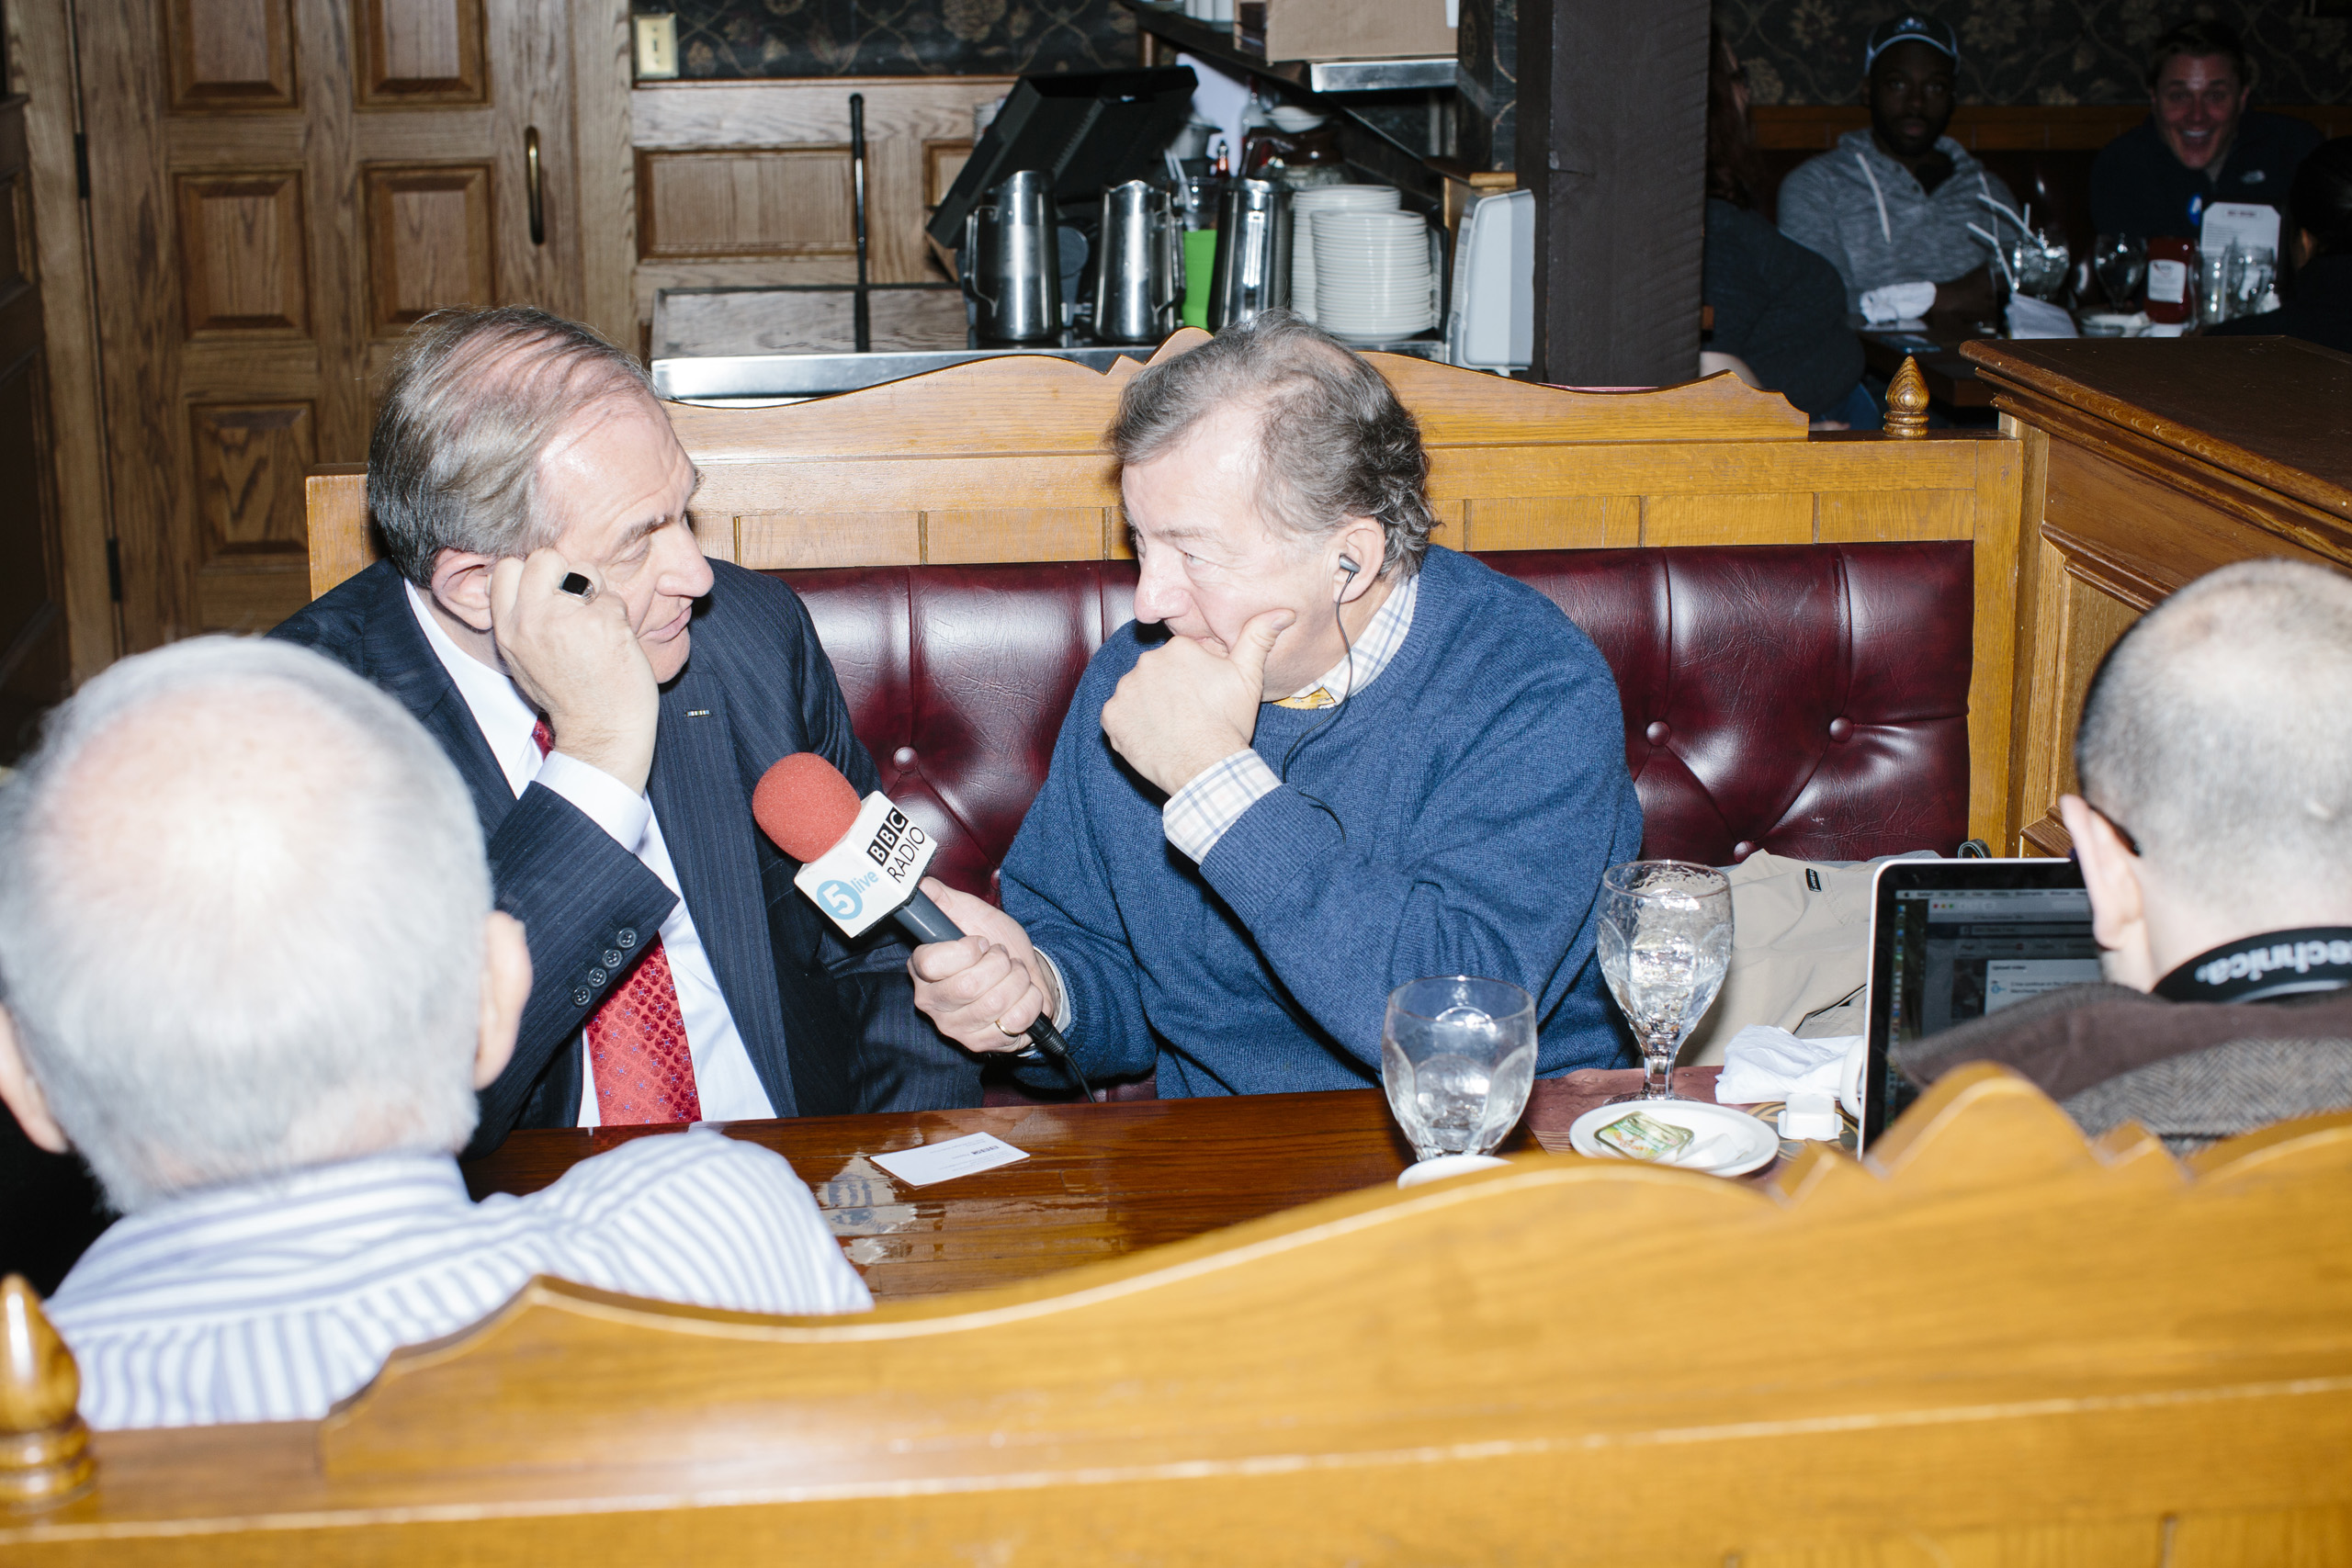 BBC 5 reporter Rhod Sharp interviews former Virginia governor and Republican presidential candidate Jim Gilmore before he gets lunch at the Puritan Backroom on the day of primary voting, Feb. 9, 2016. Sharp's radio program is called  Up All Night.  The Puritan Backroom is a long-time favorite stop of political candidates in the state and place where journalists and political junkies hang out on election days hoping to meet candidates.